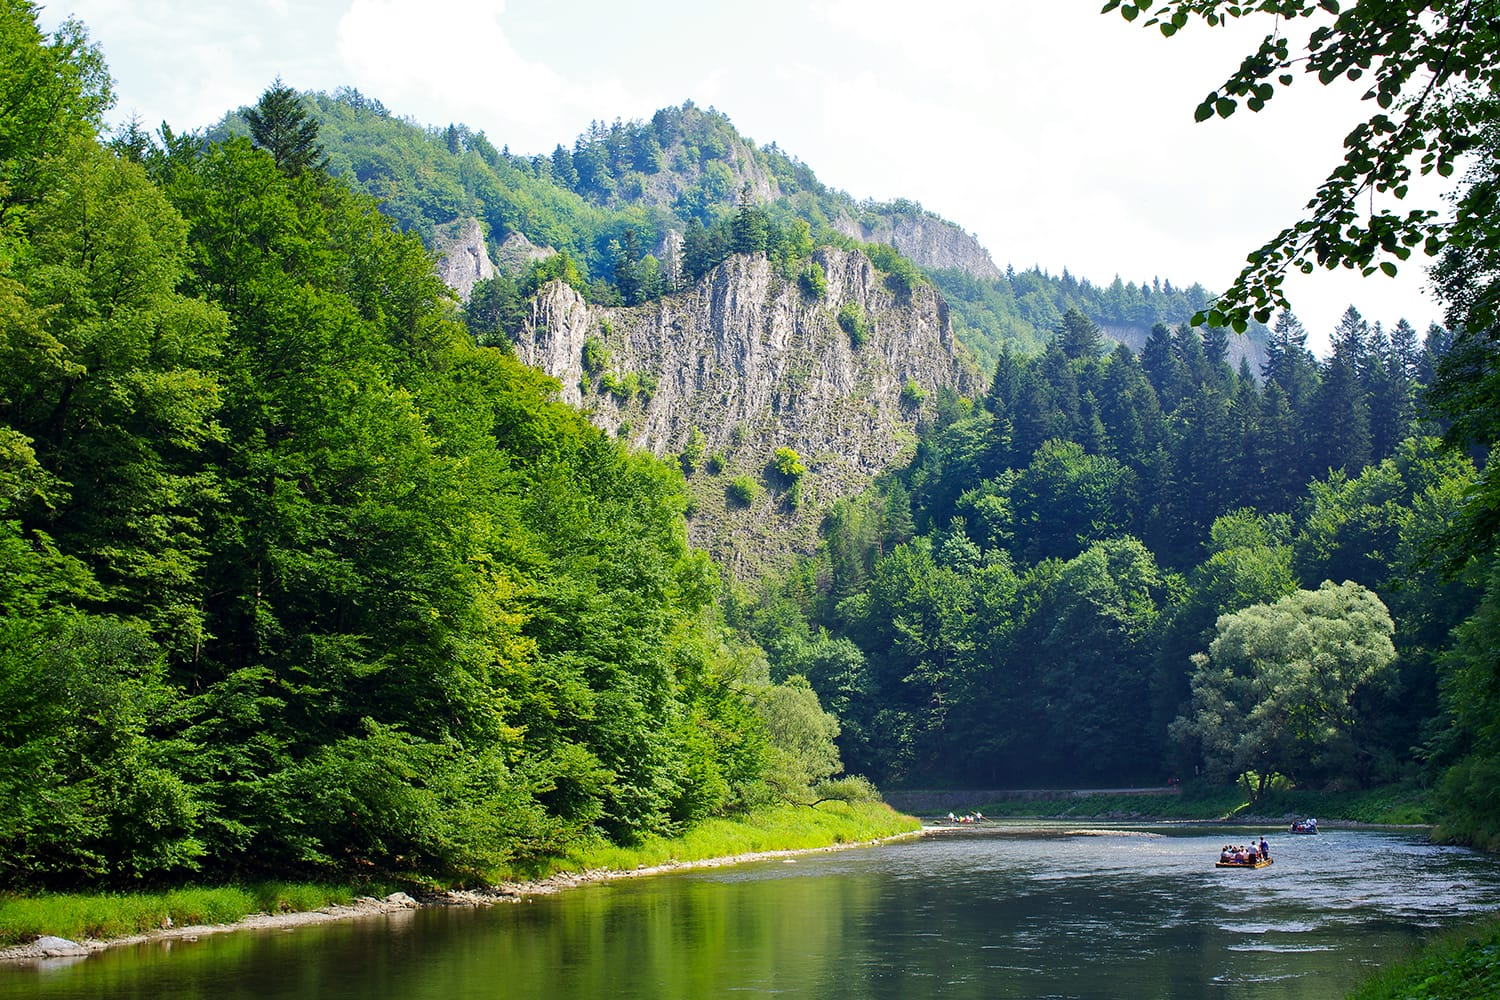 Dunajec river in Pieniny mountains - Poland